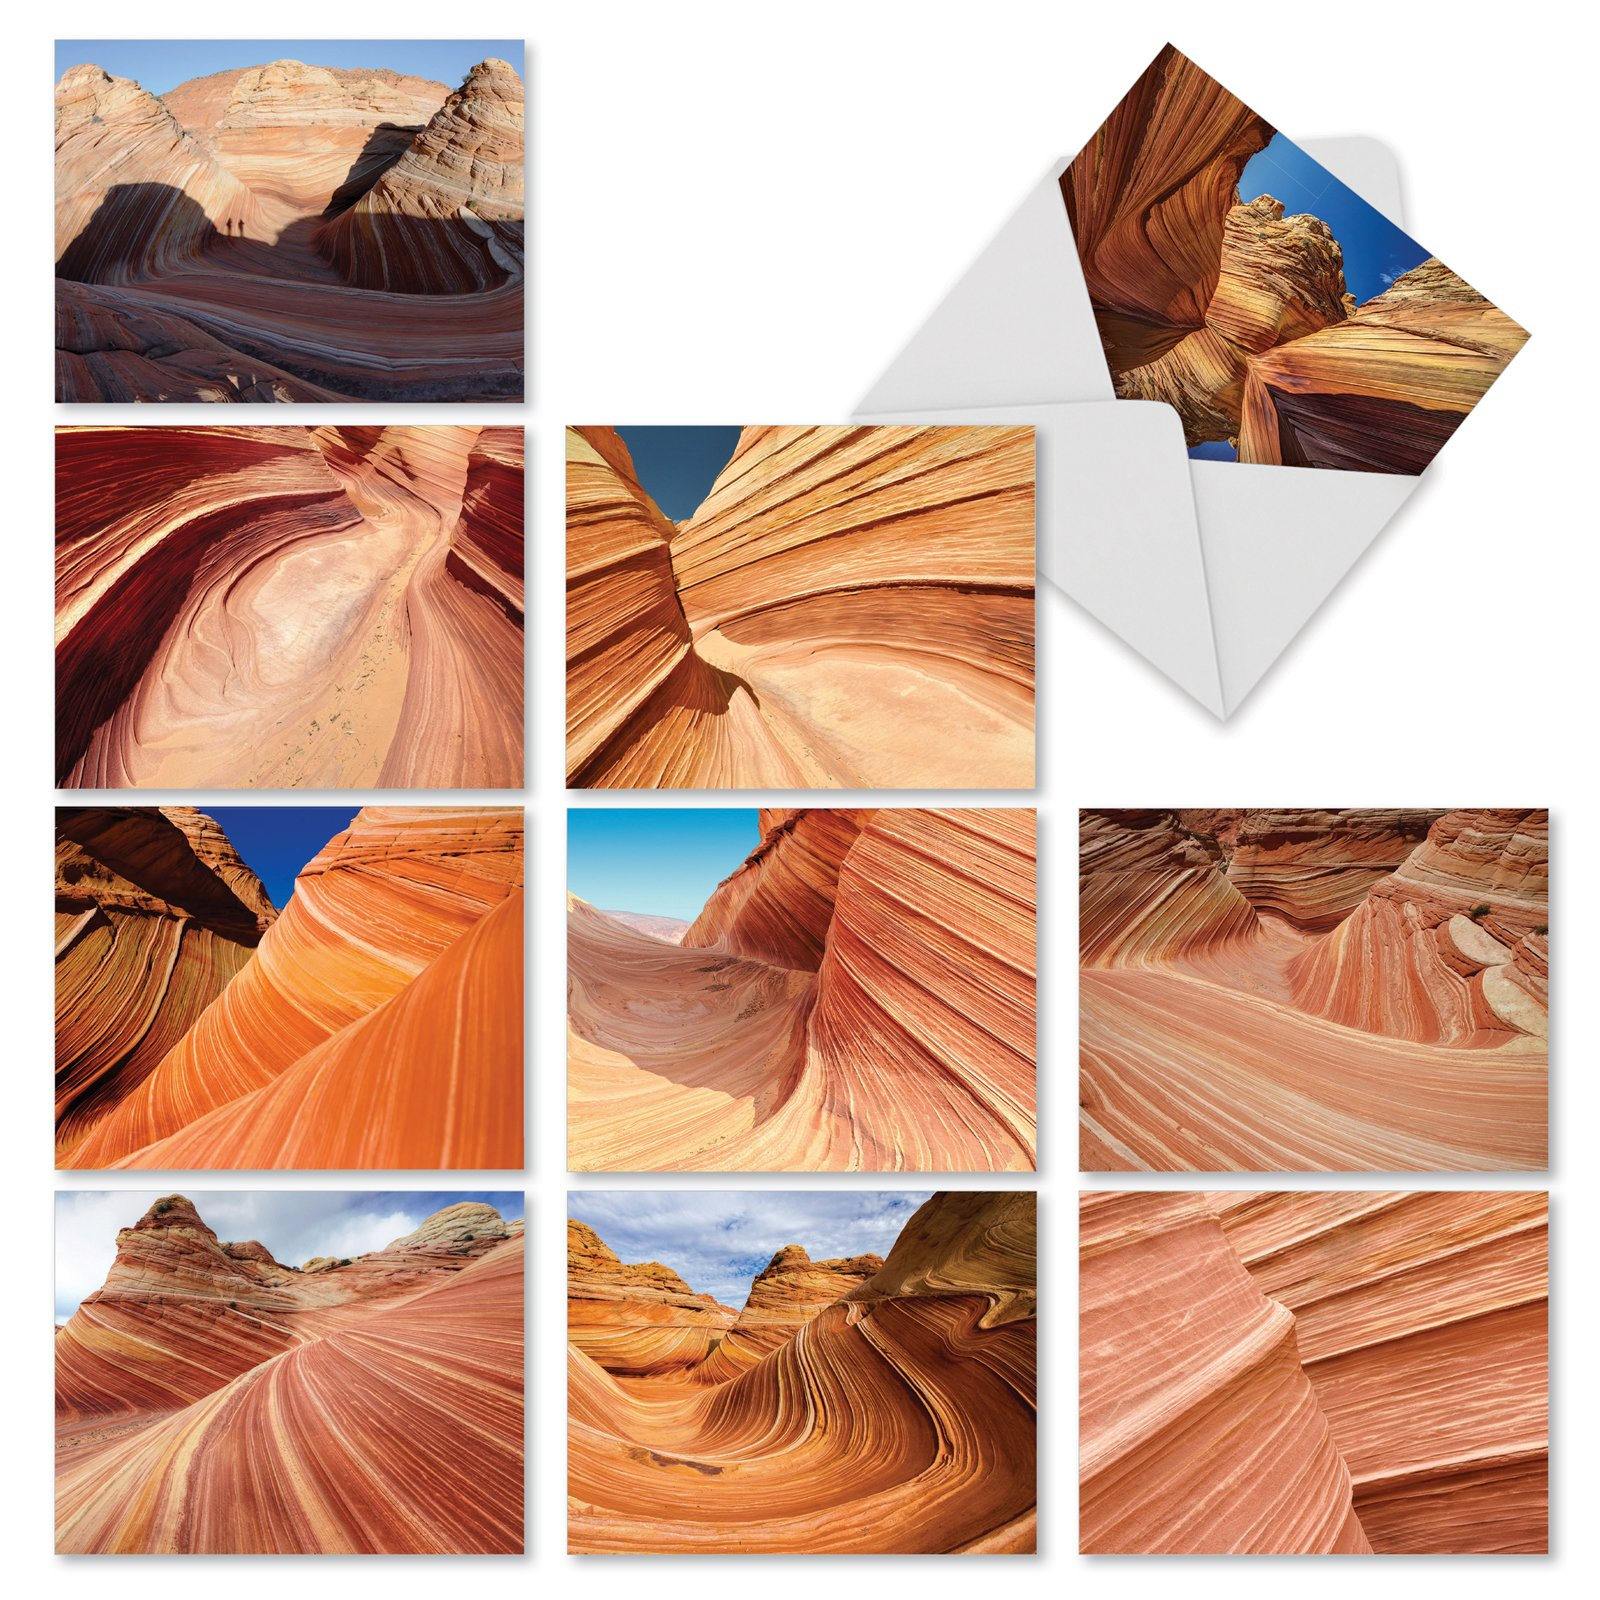 10 'Carved in Stone' Note Cards with Envelopes 4 x 5.12 inch, All Occasion Blank Greeting Cards with Pictures of Stunning Rock formations, Stationery for Weddings, Holidays, Thank You M1730BN